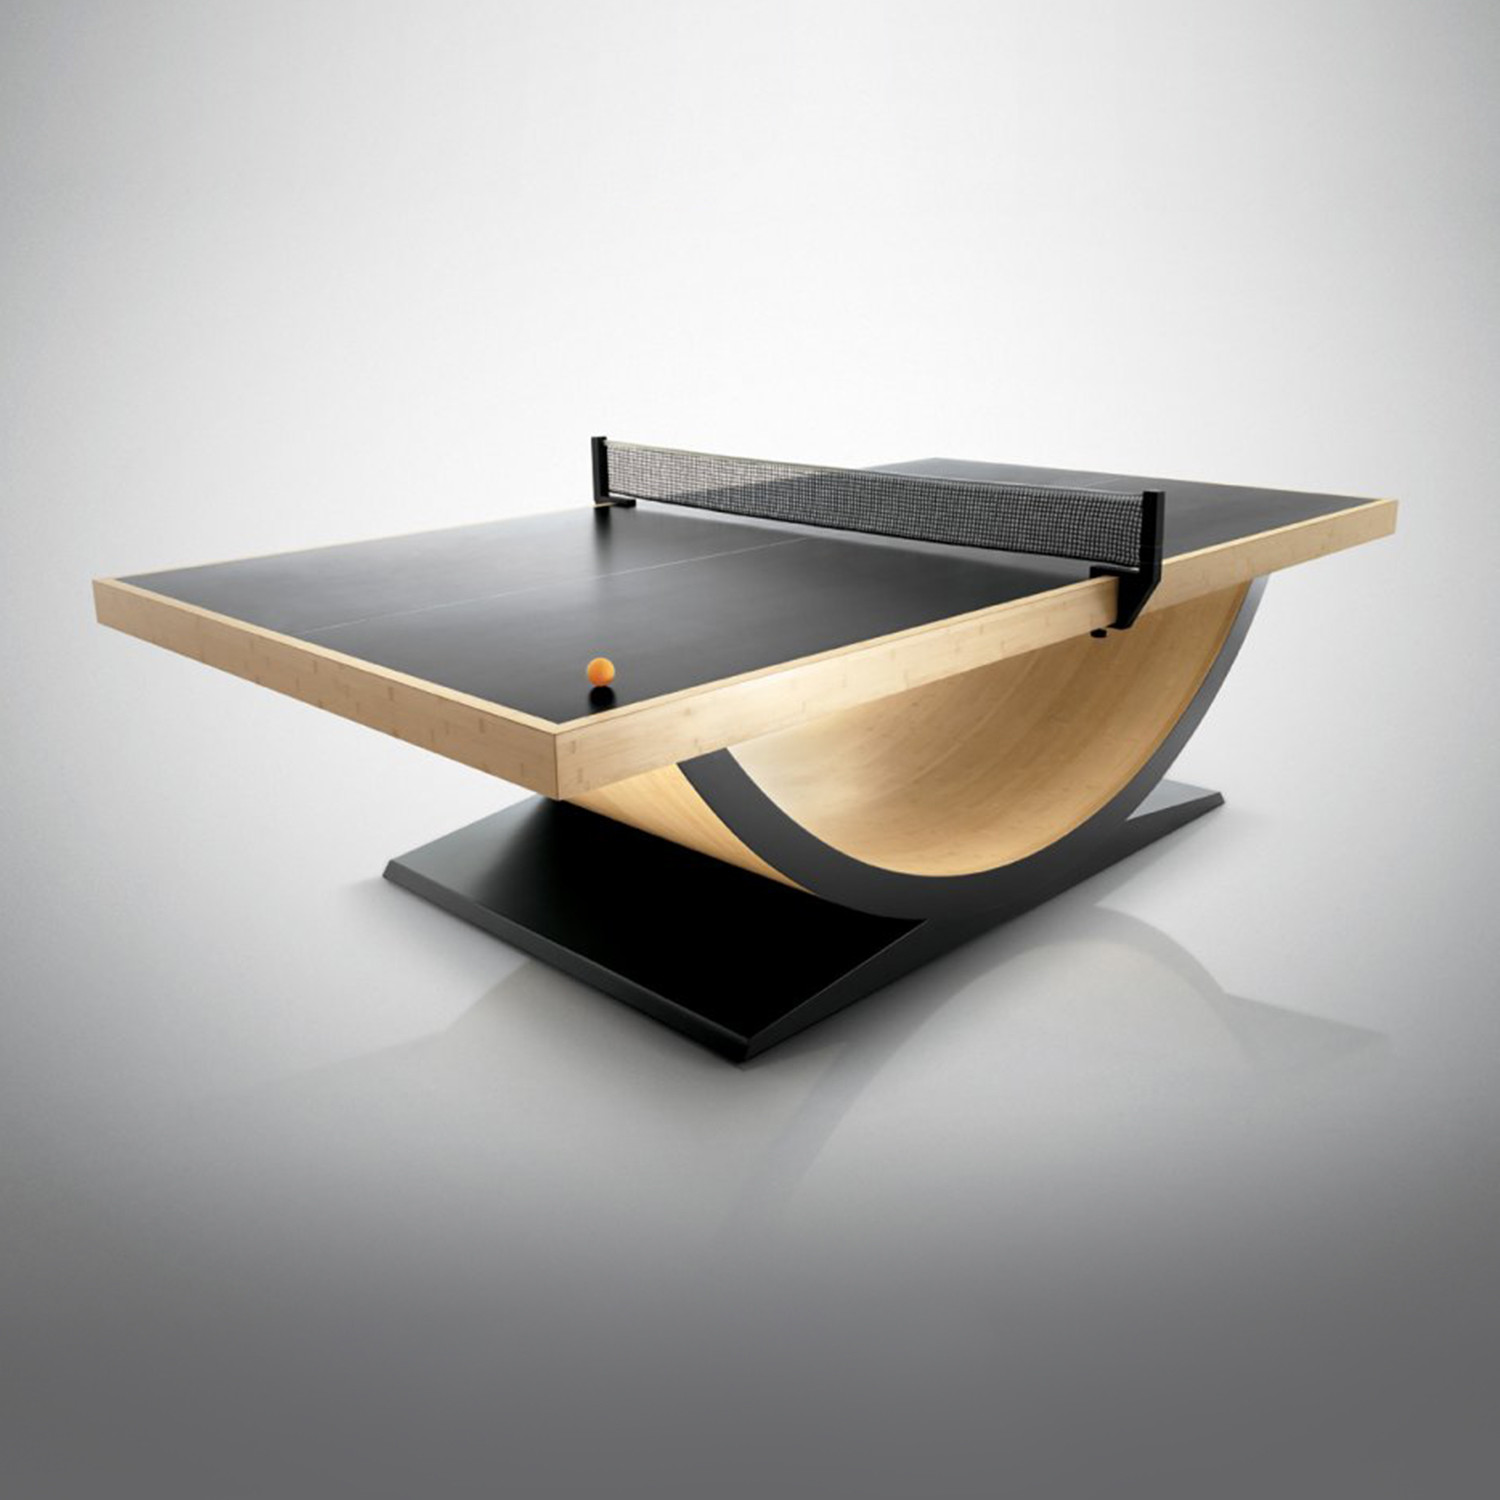 theseus // ping pong table (bamboo finish) - 11 ravens - touch of